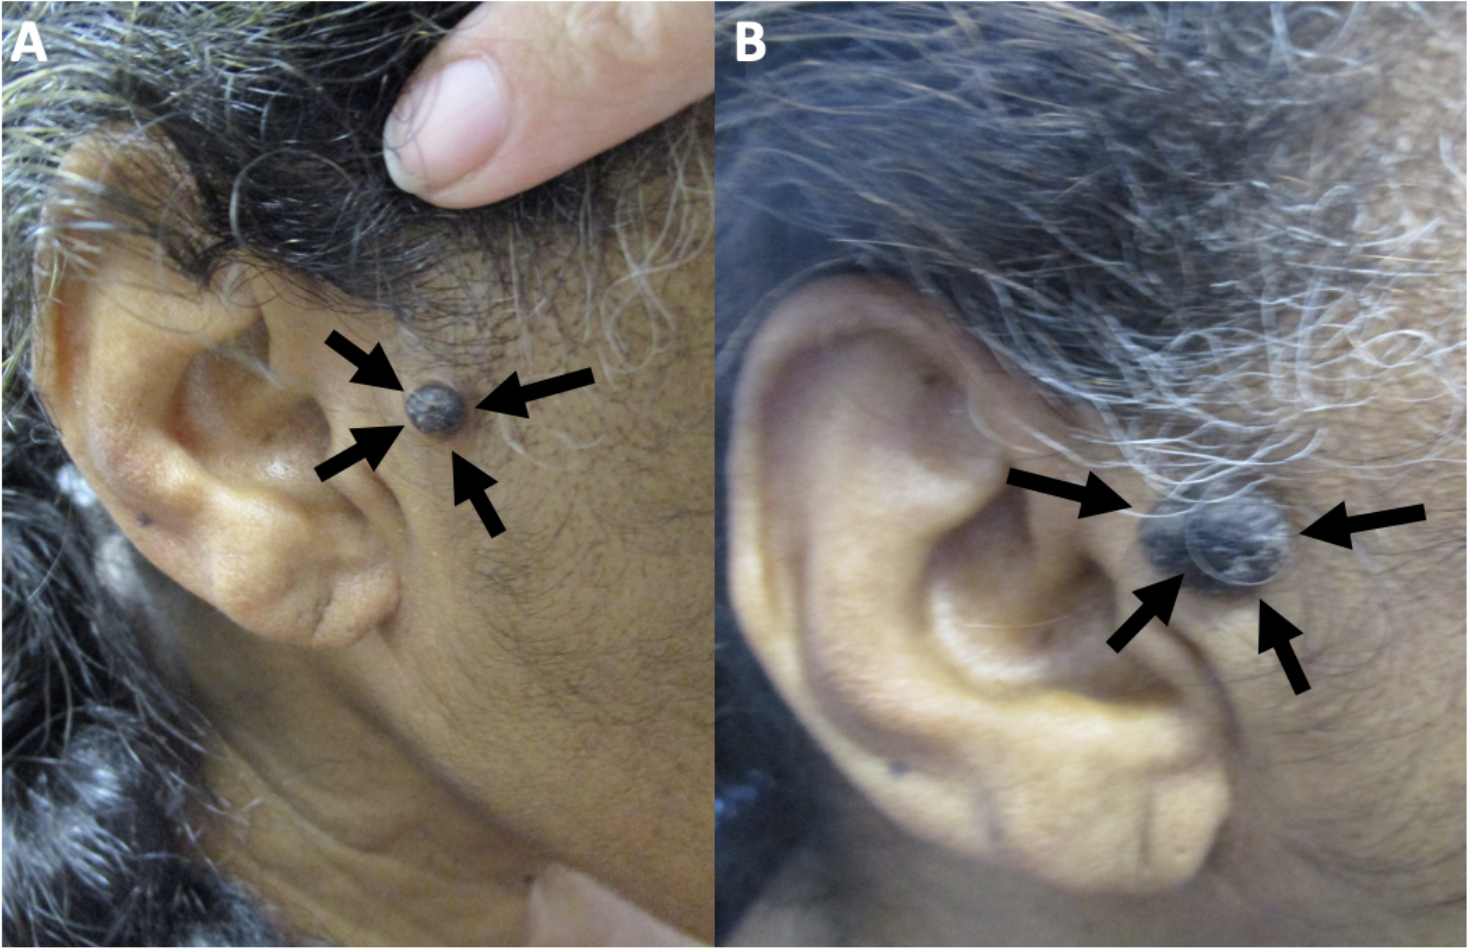 Figure 1. Clinical presentation of melanoacanthoma on the right preauricular area of a 65-year- old woman.  Clinical presentation of the initial (A) and recurrent (B) melanoacanthoma (black arrows) on the right preauricular area.  The tumor initially presented as a 2 x 1 cm black plaque (A).  The lesion not only persisted but also increased in size, morphologically mimicking a melanoma (B).